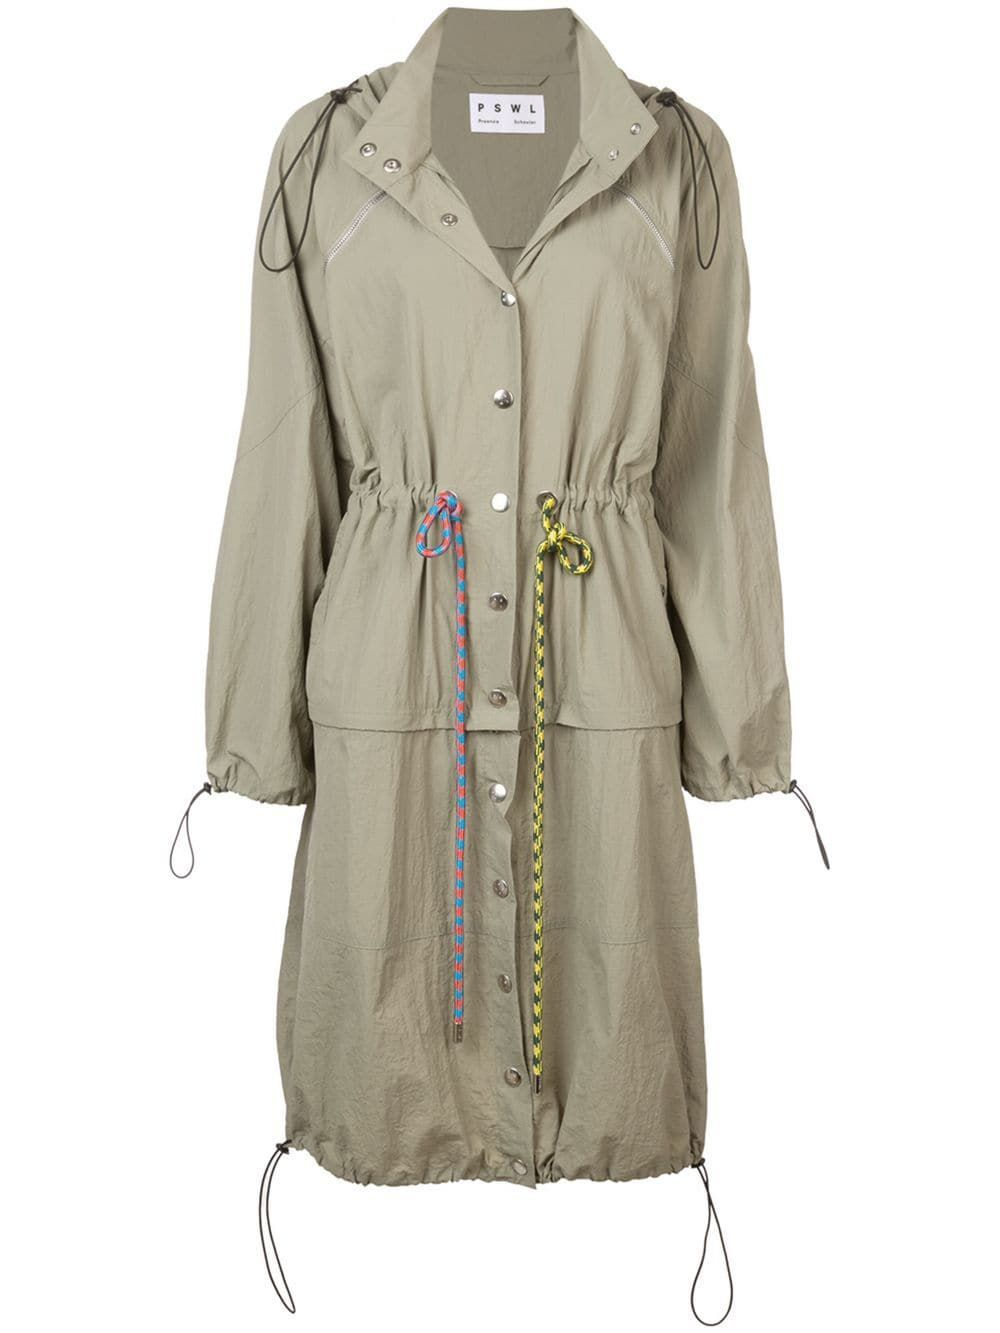 Proenza Schouler PSWL Drawstring Coat Proenza Schouler PSWL shopbop.com $550.00 SHOP NOW Colorful drawstrings give this army green anorak a playful feel.